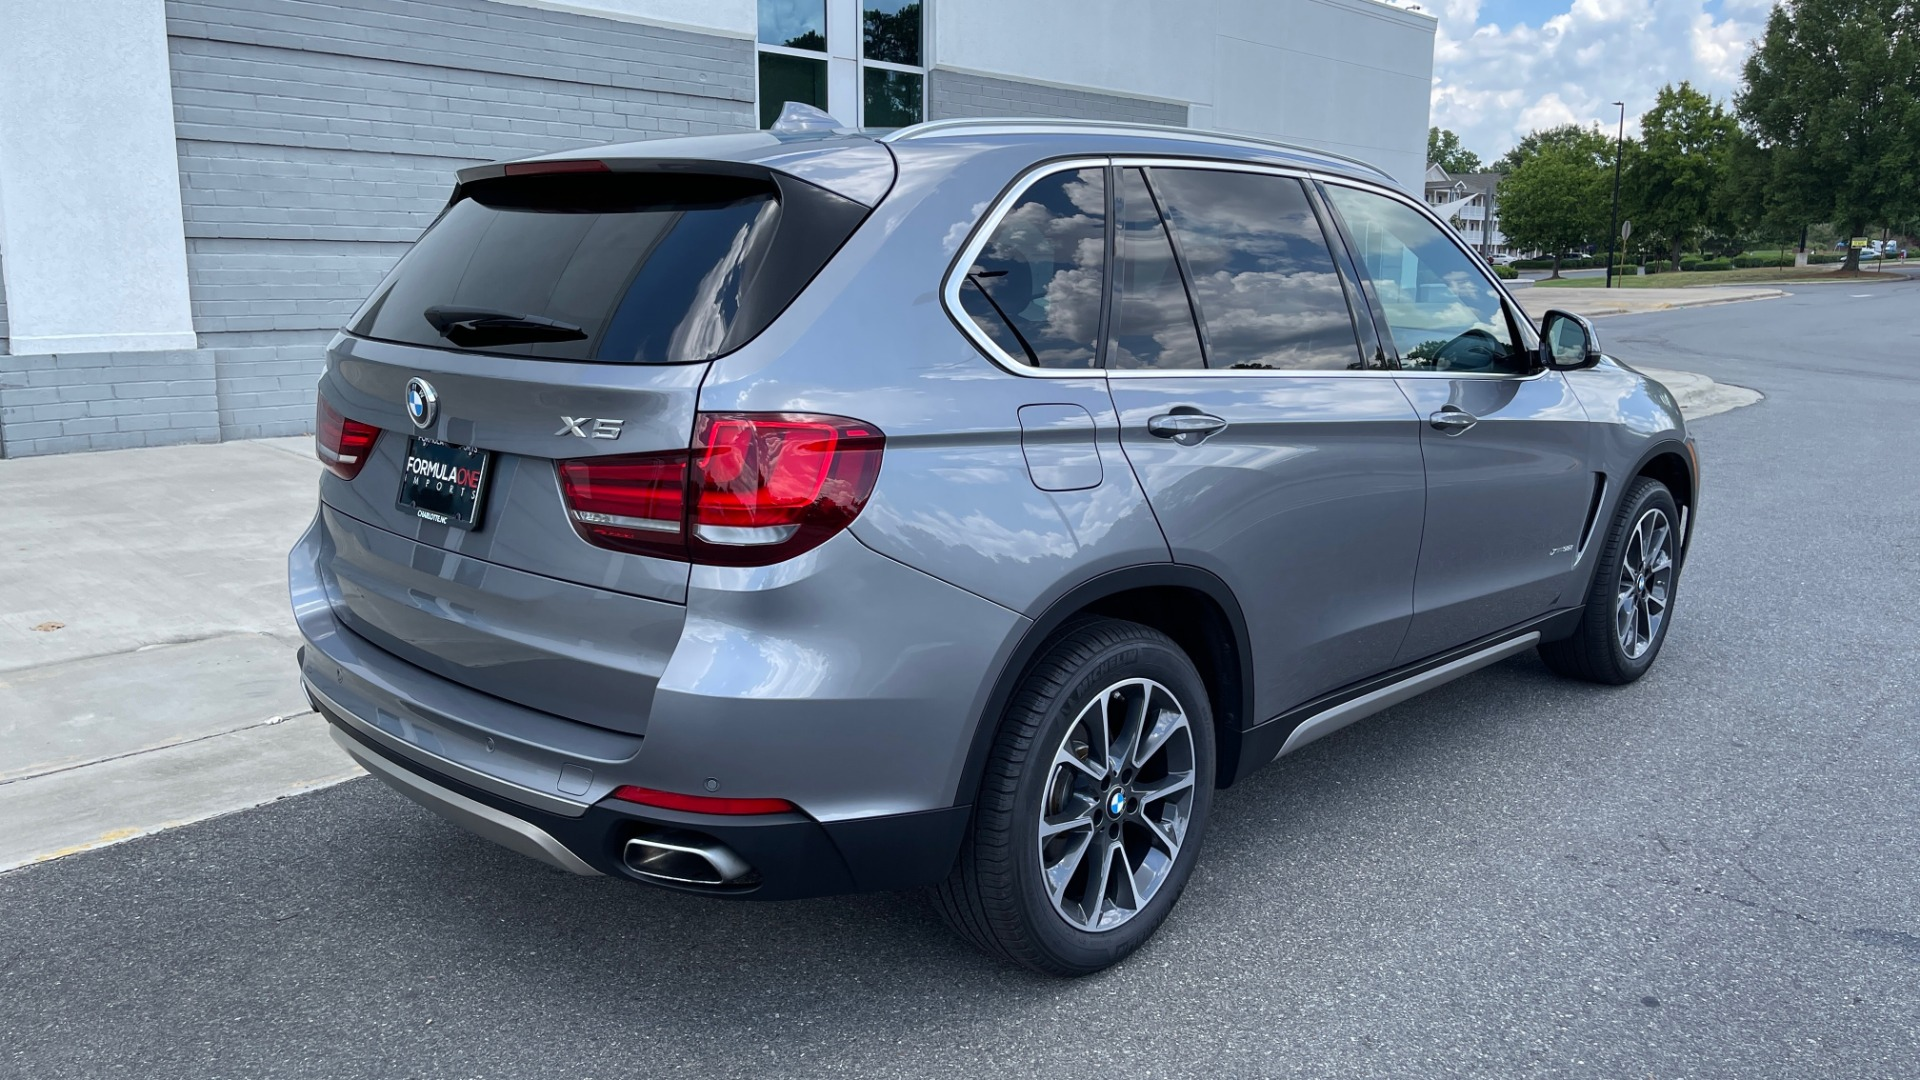 Used 2018 BMW X5 XDRIVE35I PREMIUM / DRVR ASST / WIRELESS CHARGING / CAMERAS for sale $46,995 at Formula Imports in Charlotte NC 28227 2